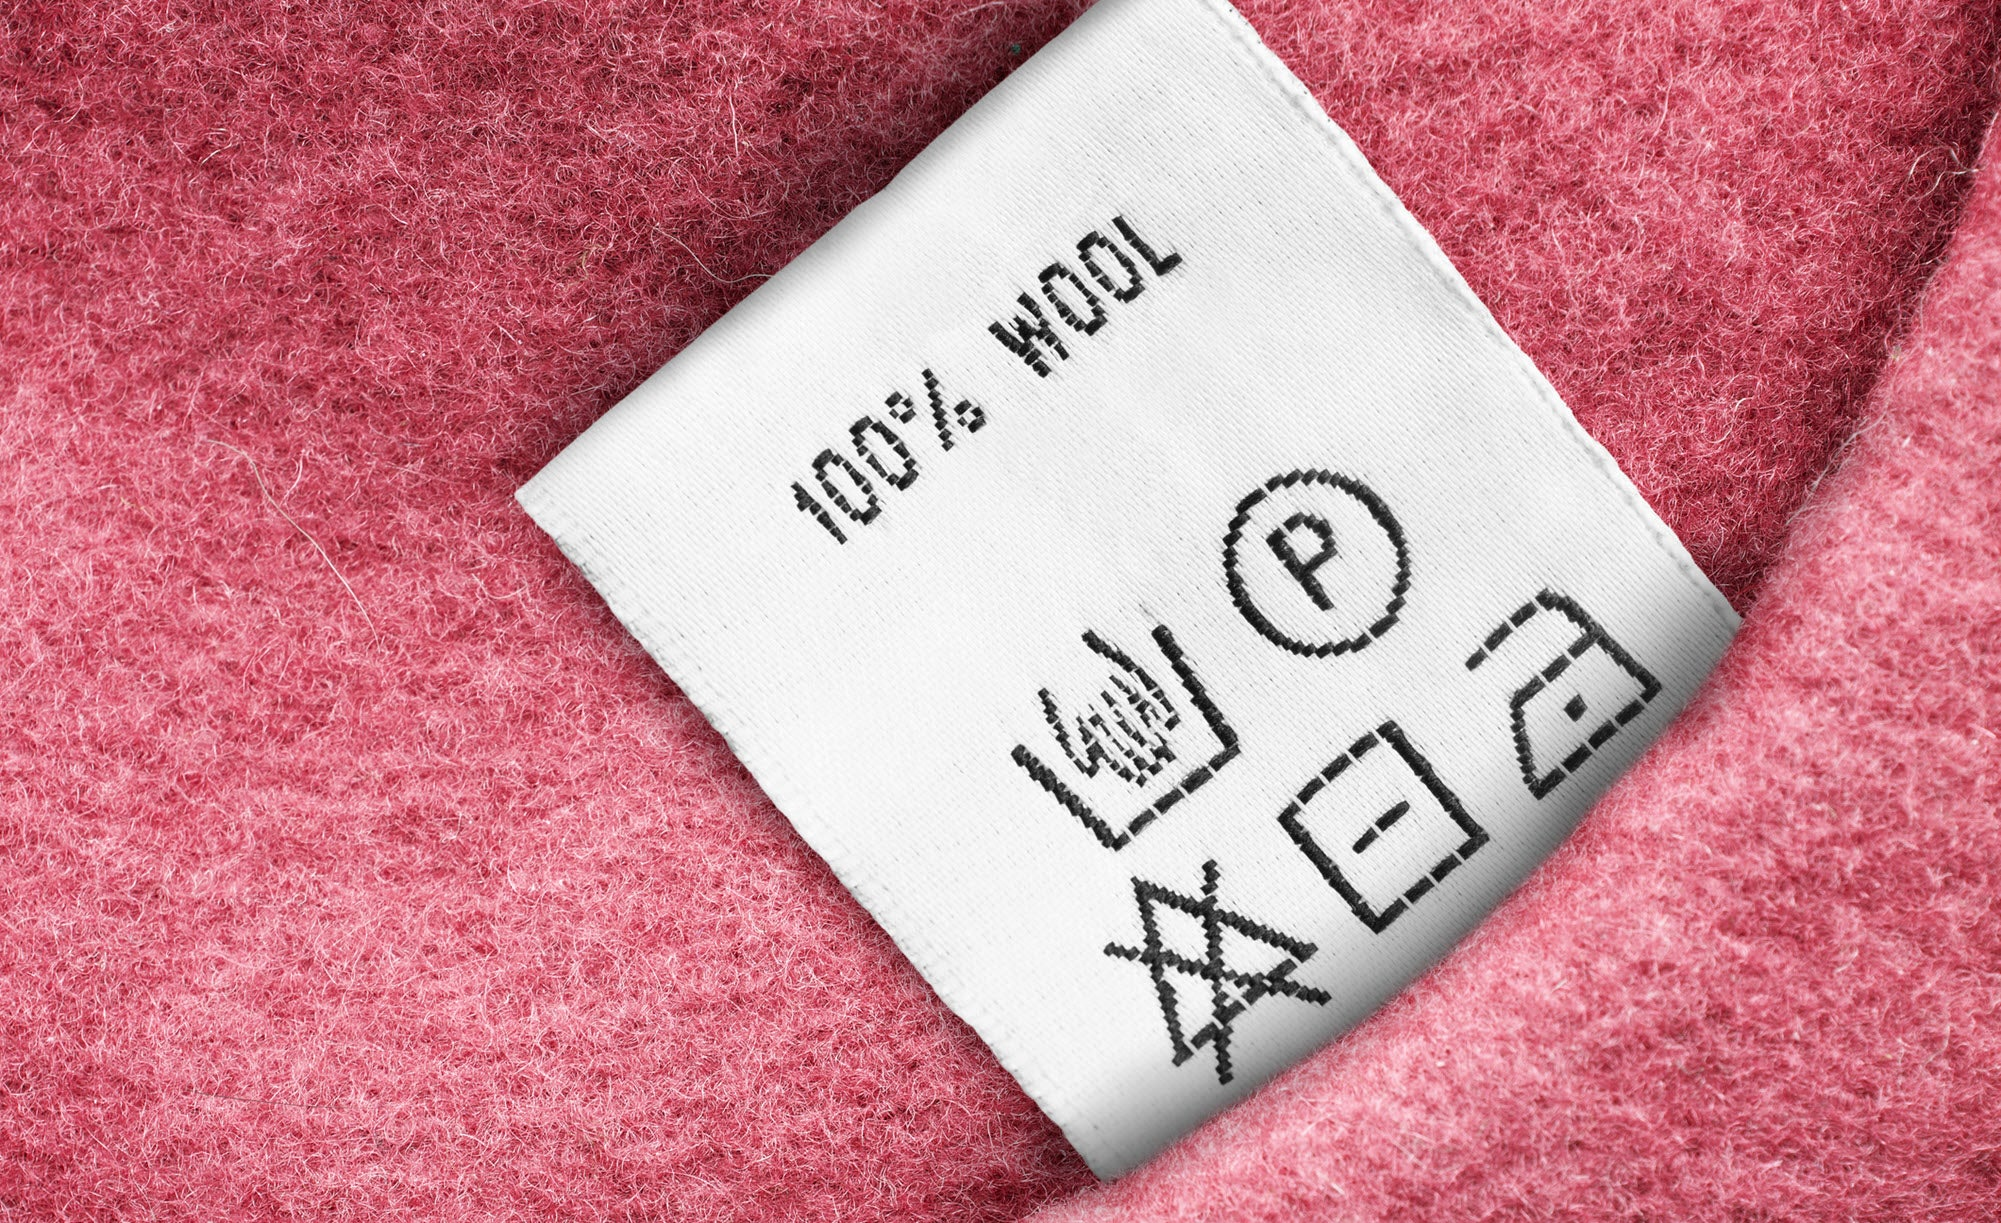 Reading a care label for a wool garment